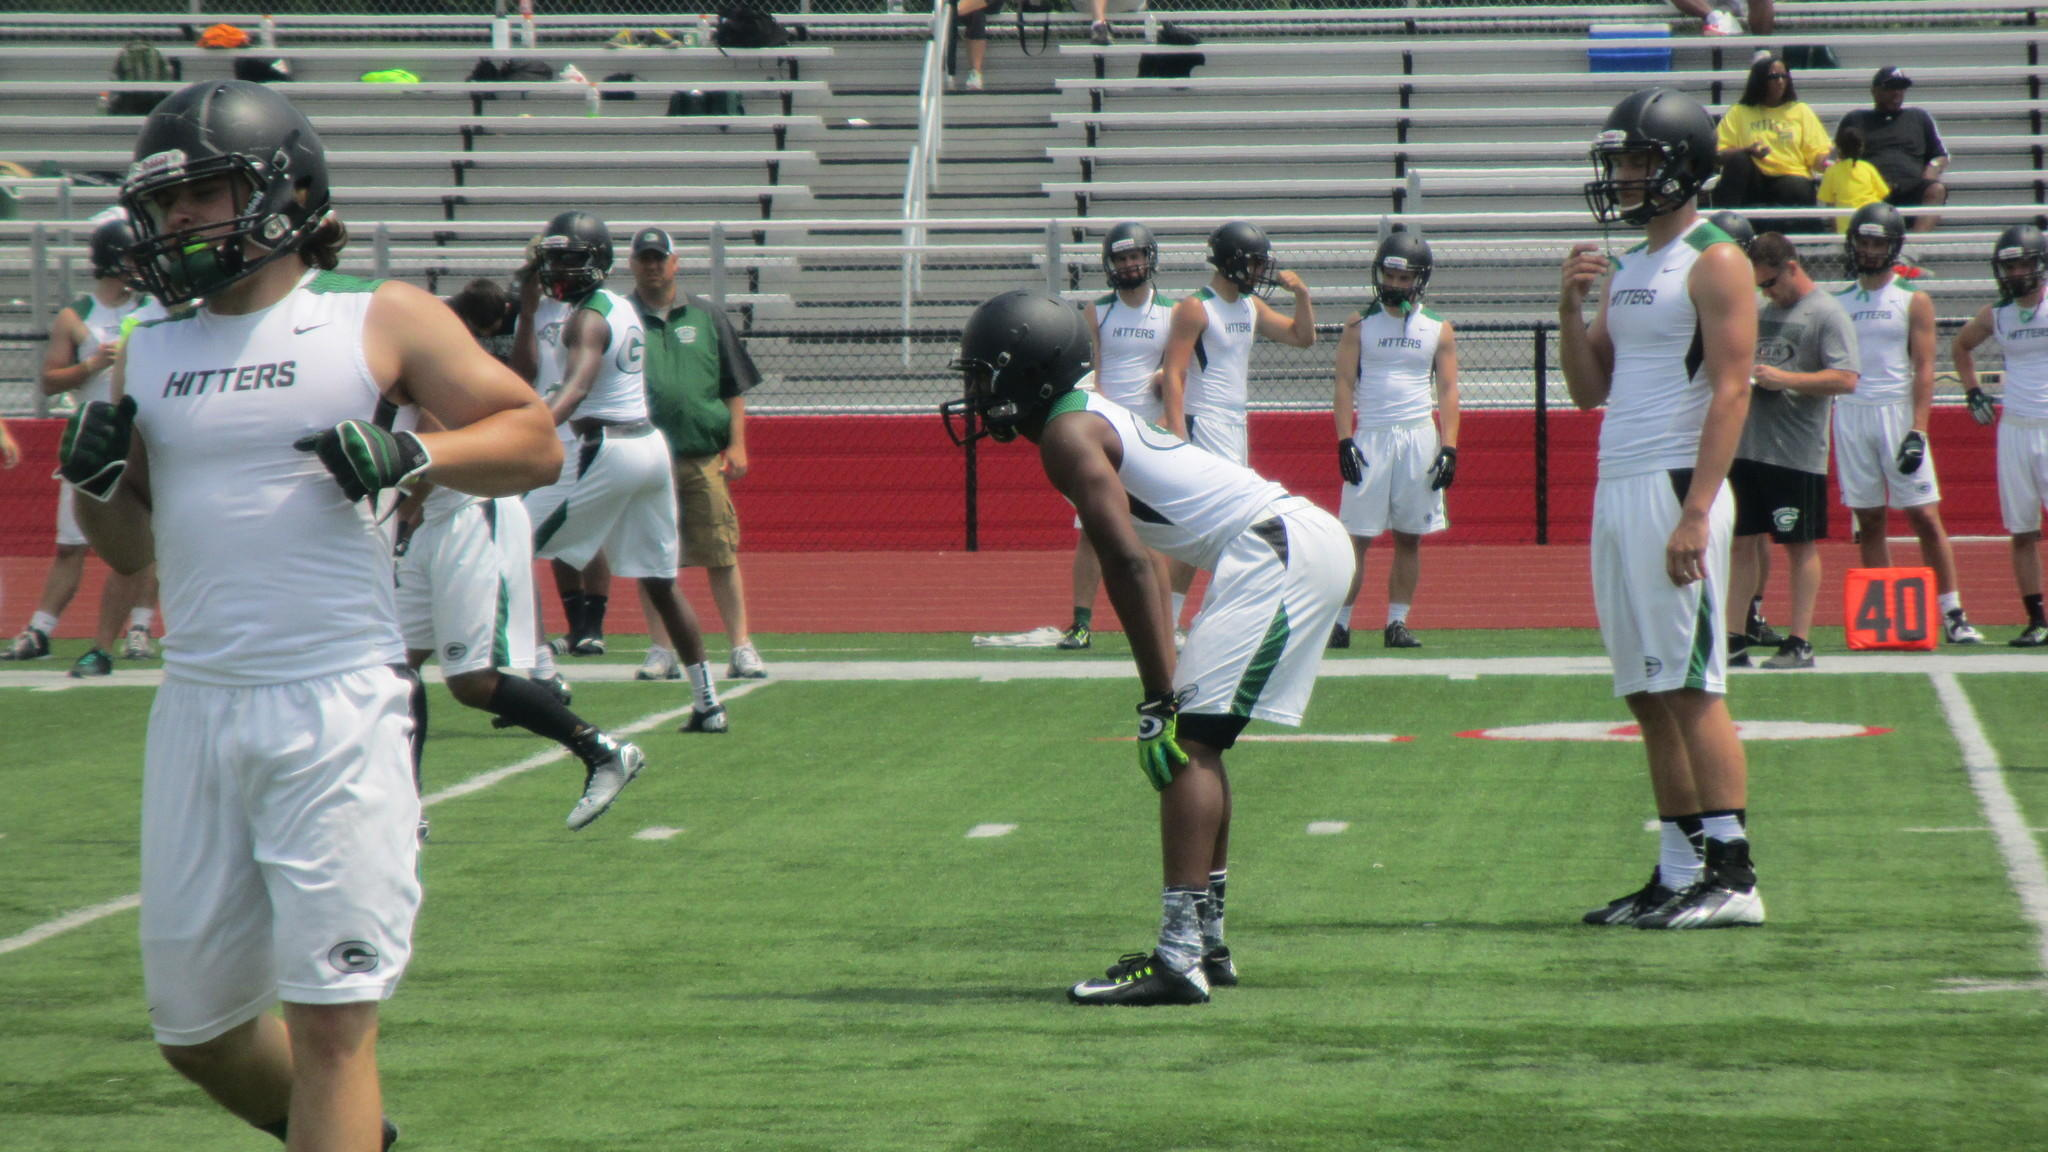 Glenbard West quarterback Kyle Kramer (right) gets ready for a snap in Friday's 7-on-7 game at Naperville Central High School.